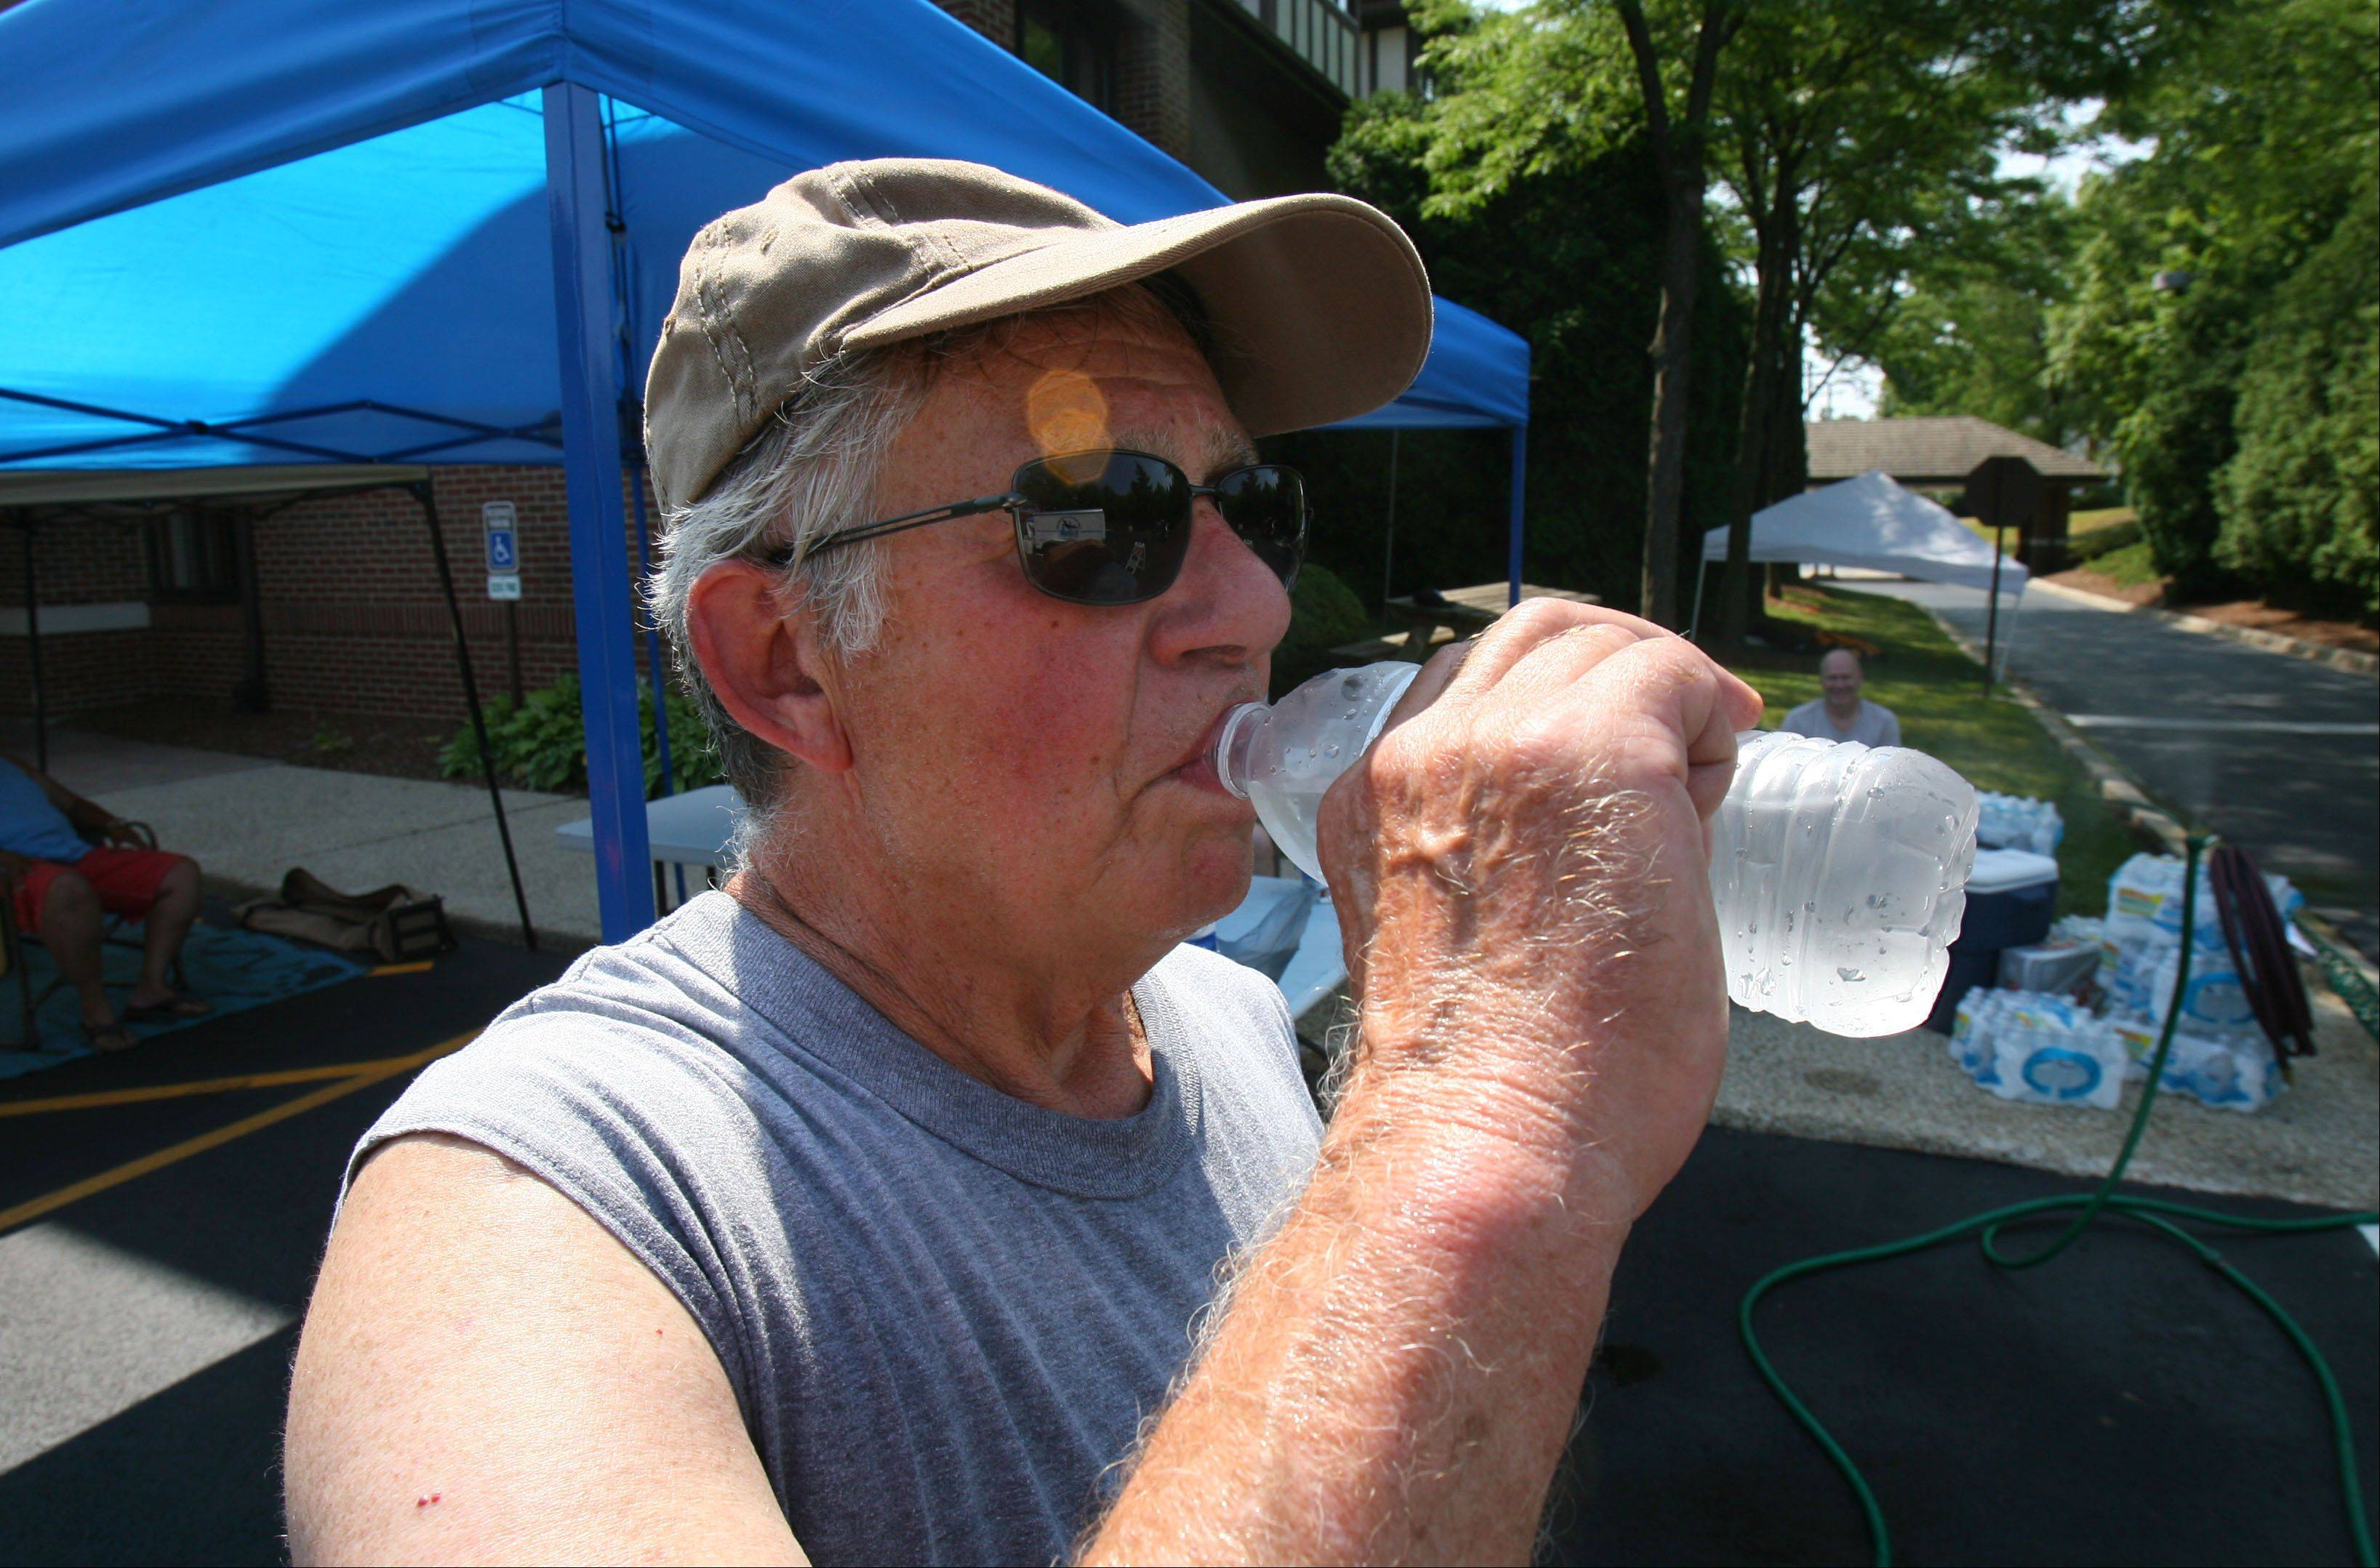 Bob Miller of Elk Grove takes a water break after setting up for the Dog Days event Thursday in downtown Libertyvile.